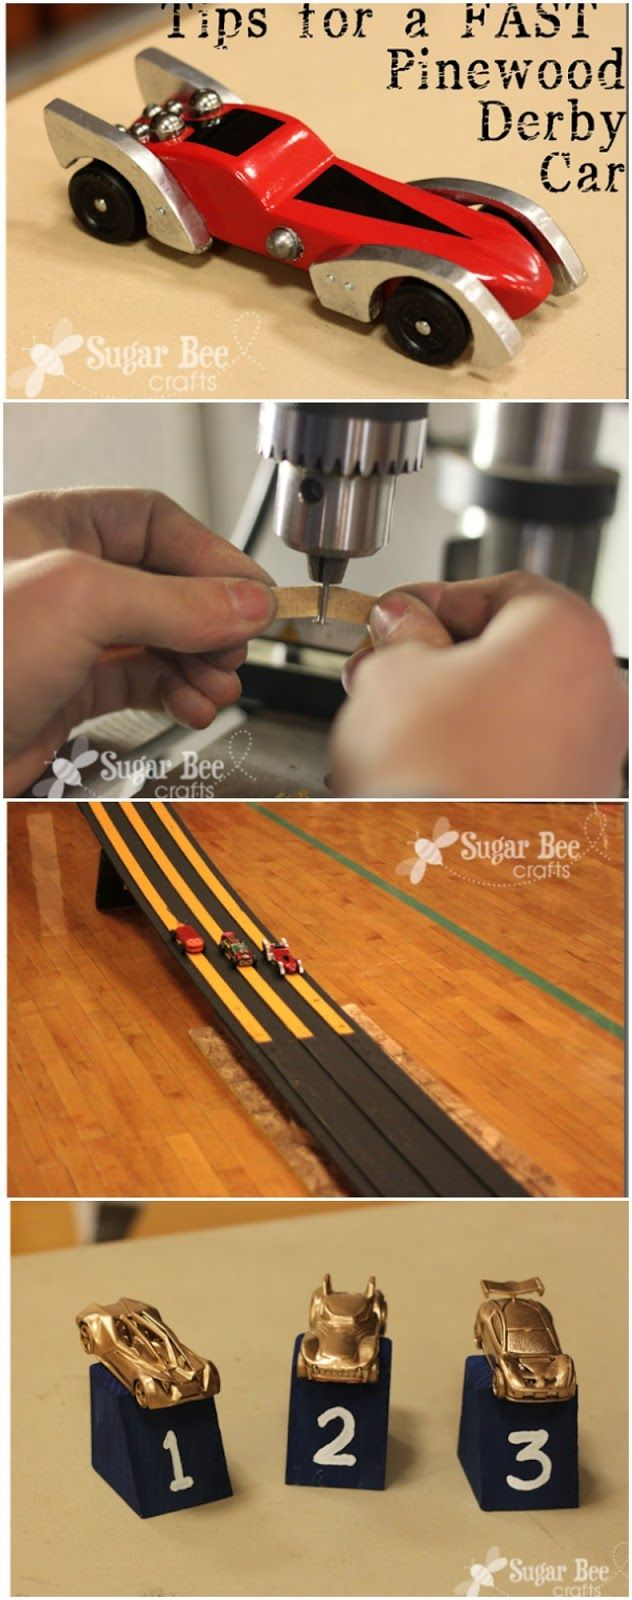 Want the awesomest most fastest Pinewood Derby Car?? It's that time of year, so I thought I'd let Trevor do a guest post about tips and tricks to make a fast car, using the car from last year….take it away babe….how to make and build a fast pinewood derby car: So you want to go …